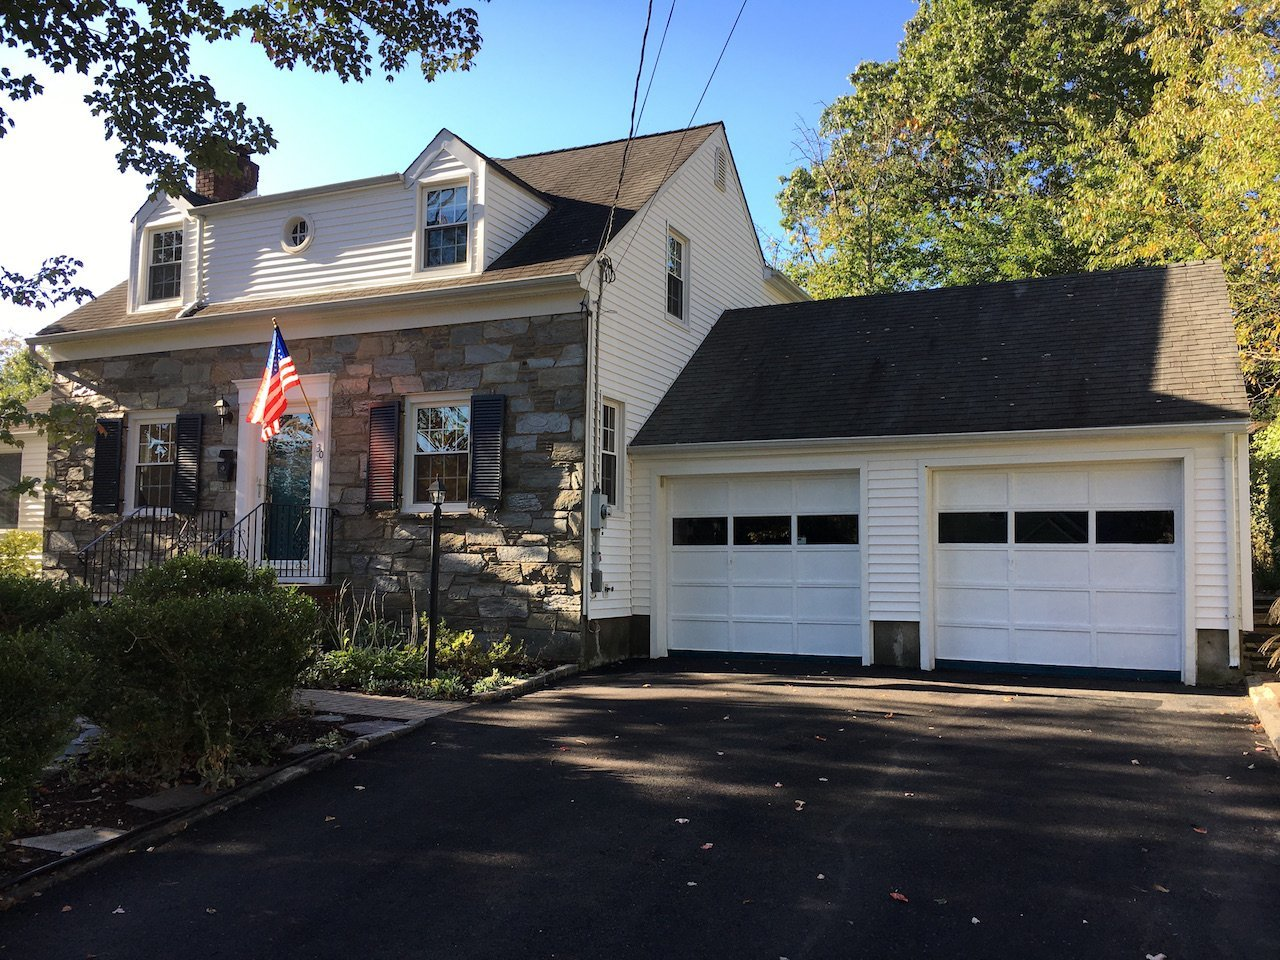 House for Sale in Madison NJ. 30 Longview Ave Madison NJ 07940 is For Sale